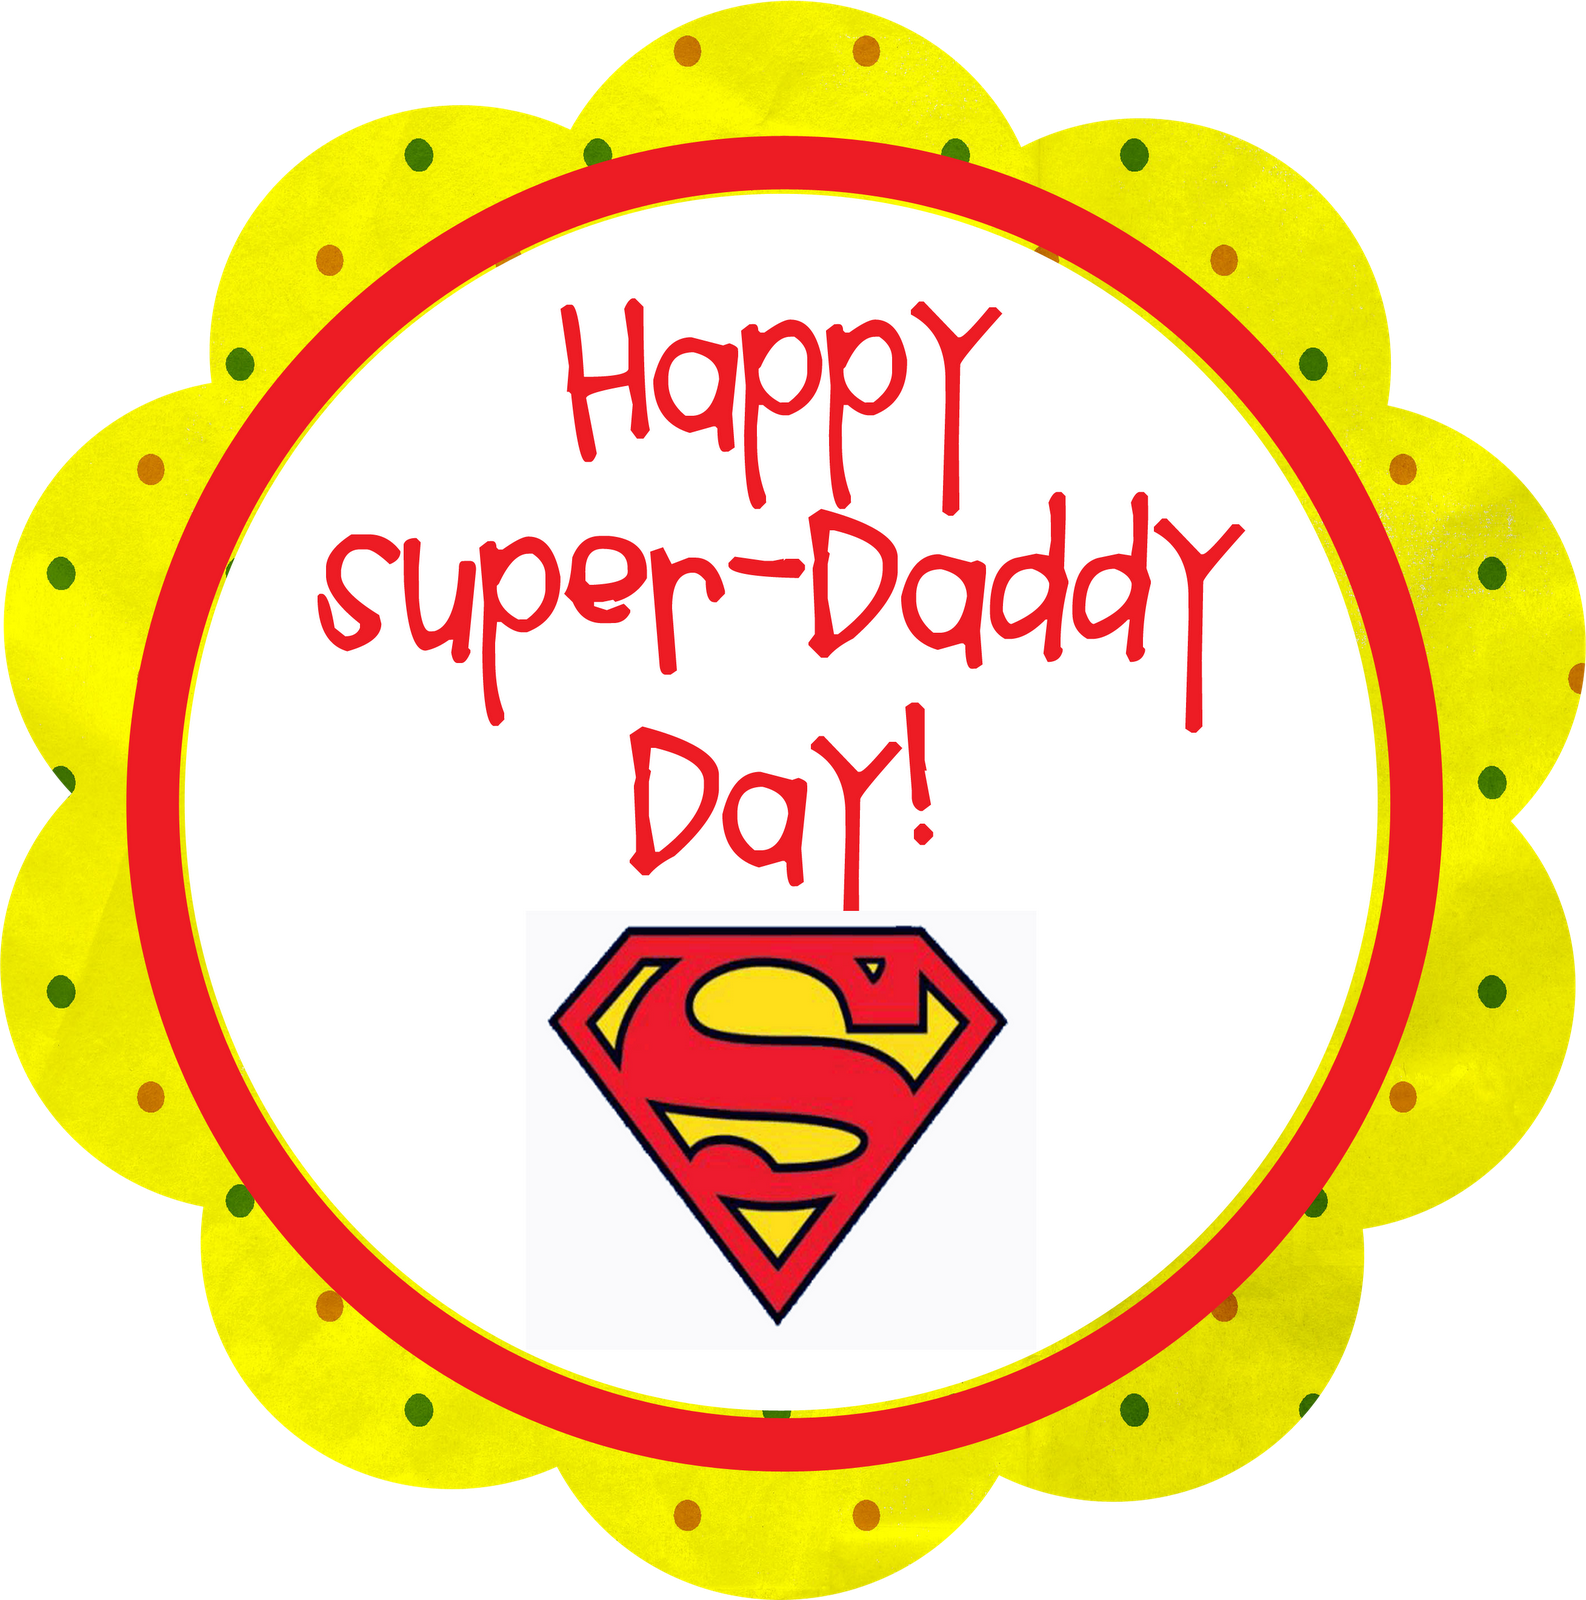 Png Format Images Of Fathers Day